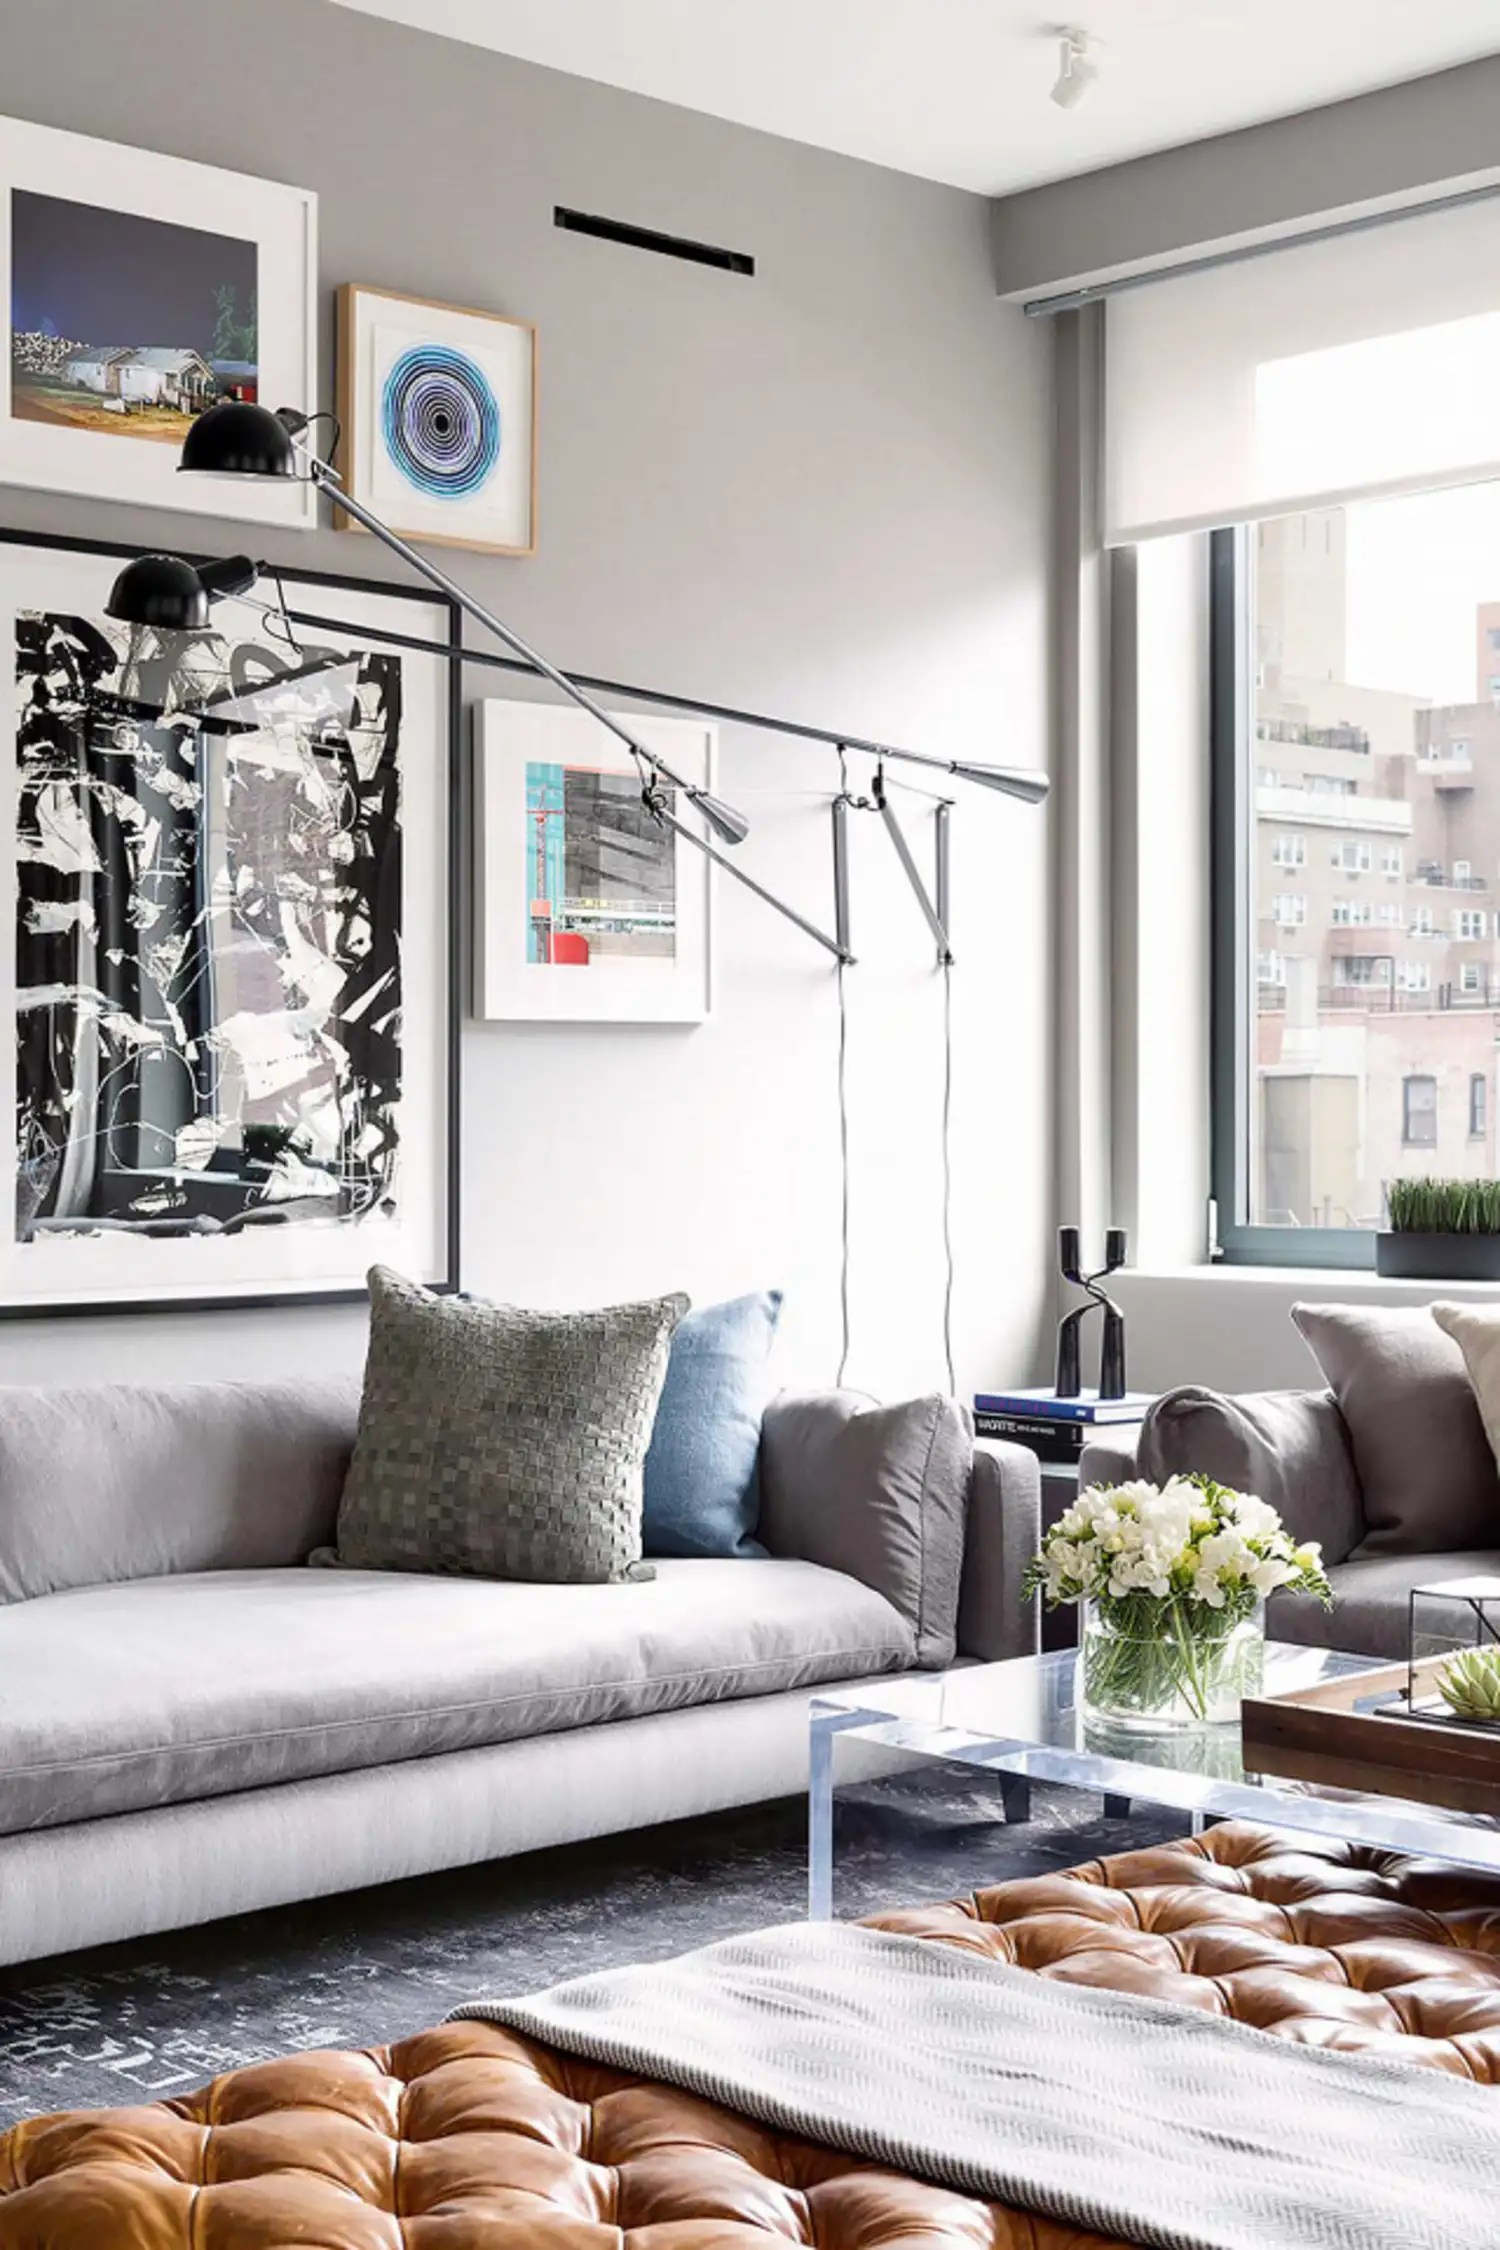 5 Surprisingly Perfect Pieces For a Small Living Room ... on Small Living Room  id=56013